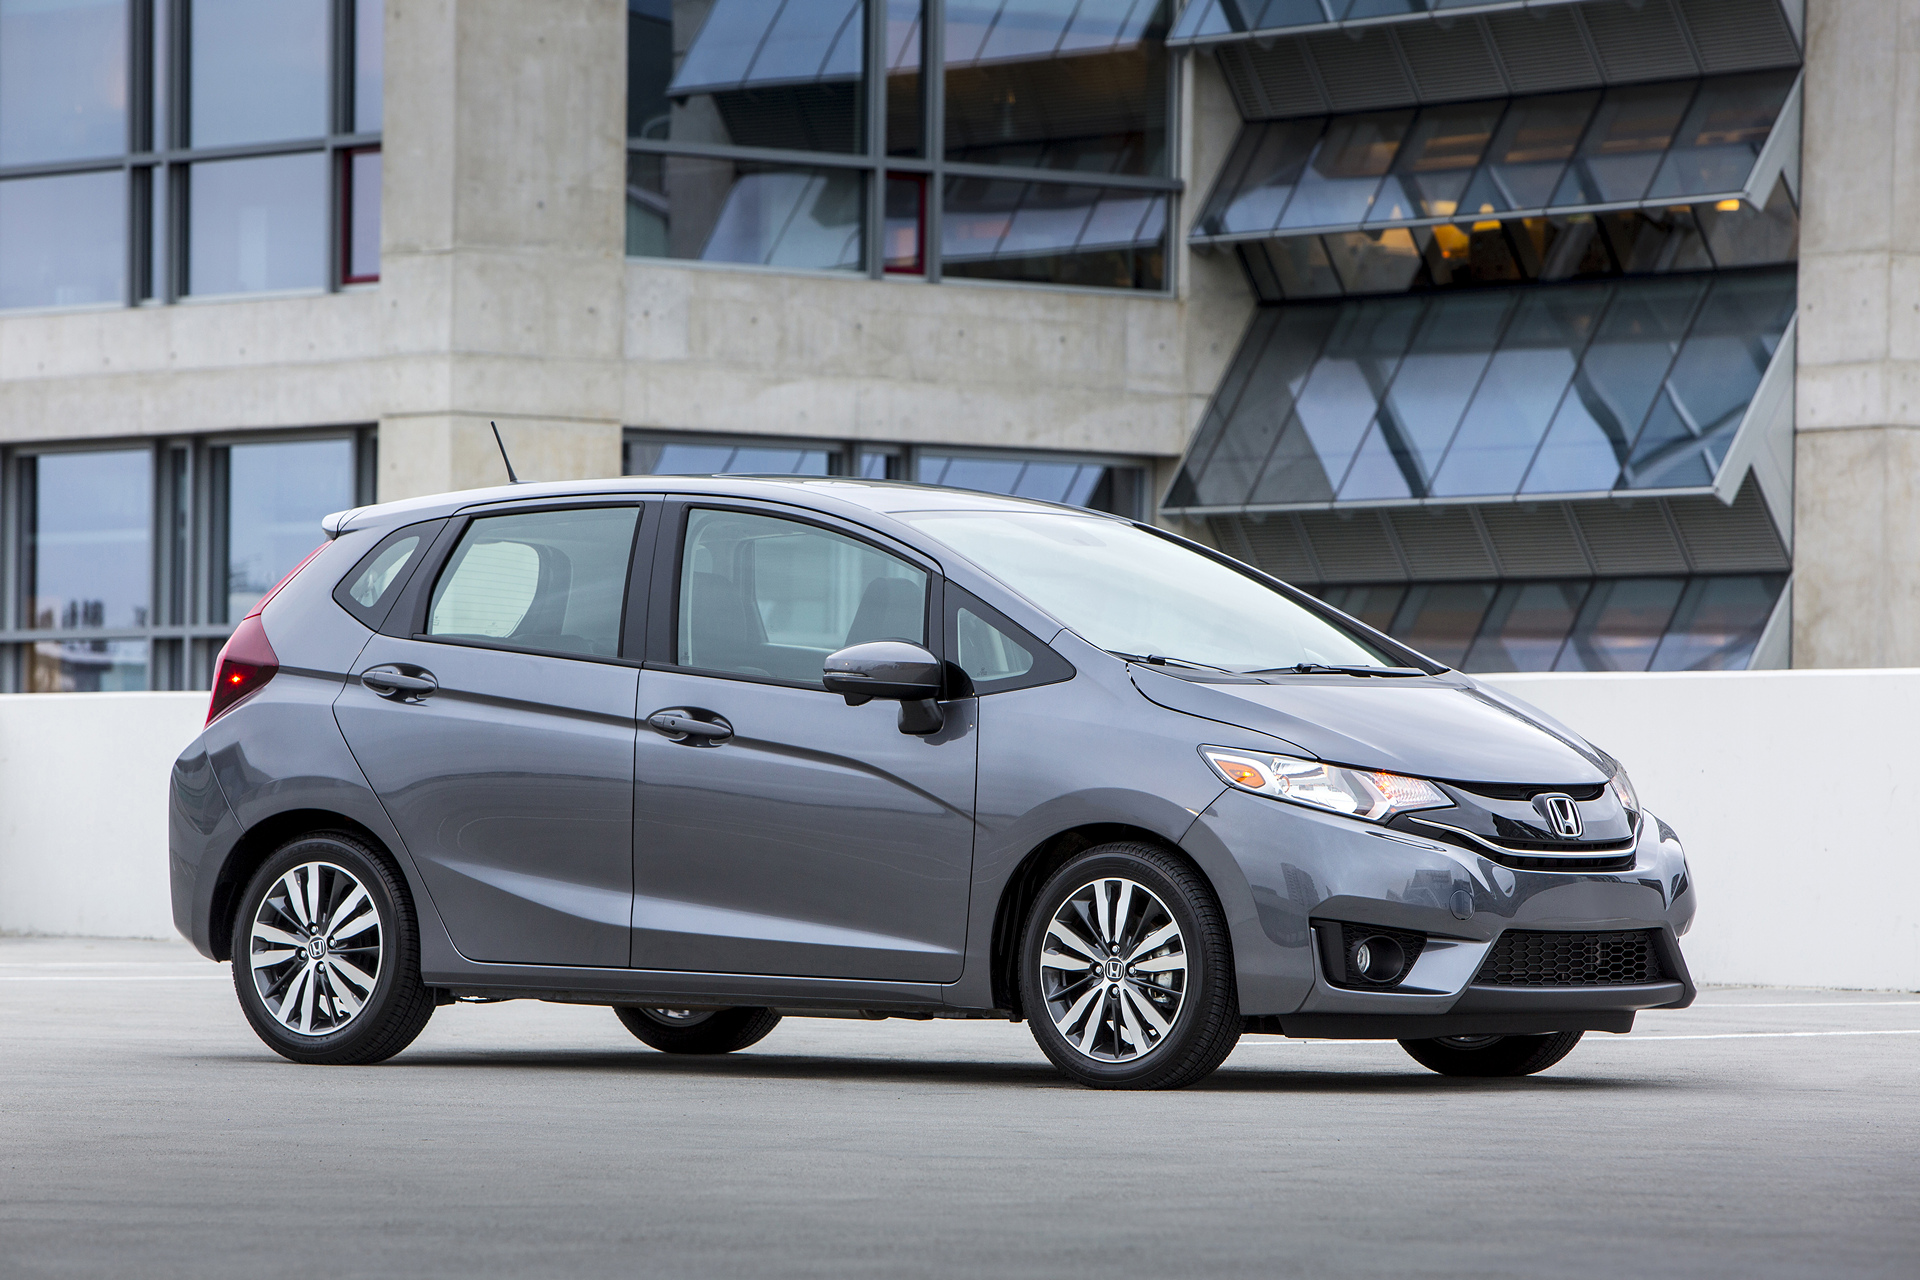 2017 Honda Fit © Honda Motor Co., Ltd.